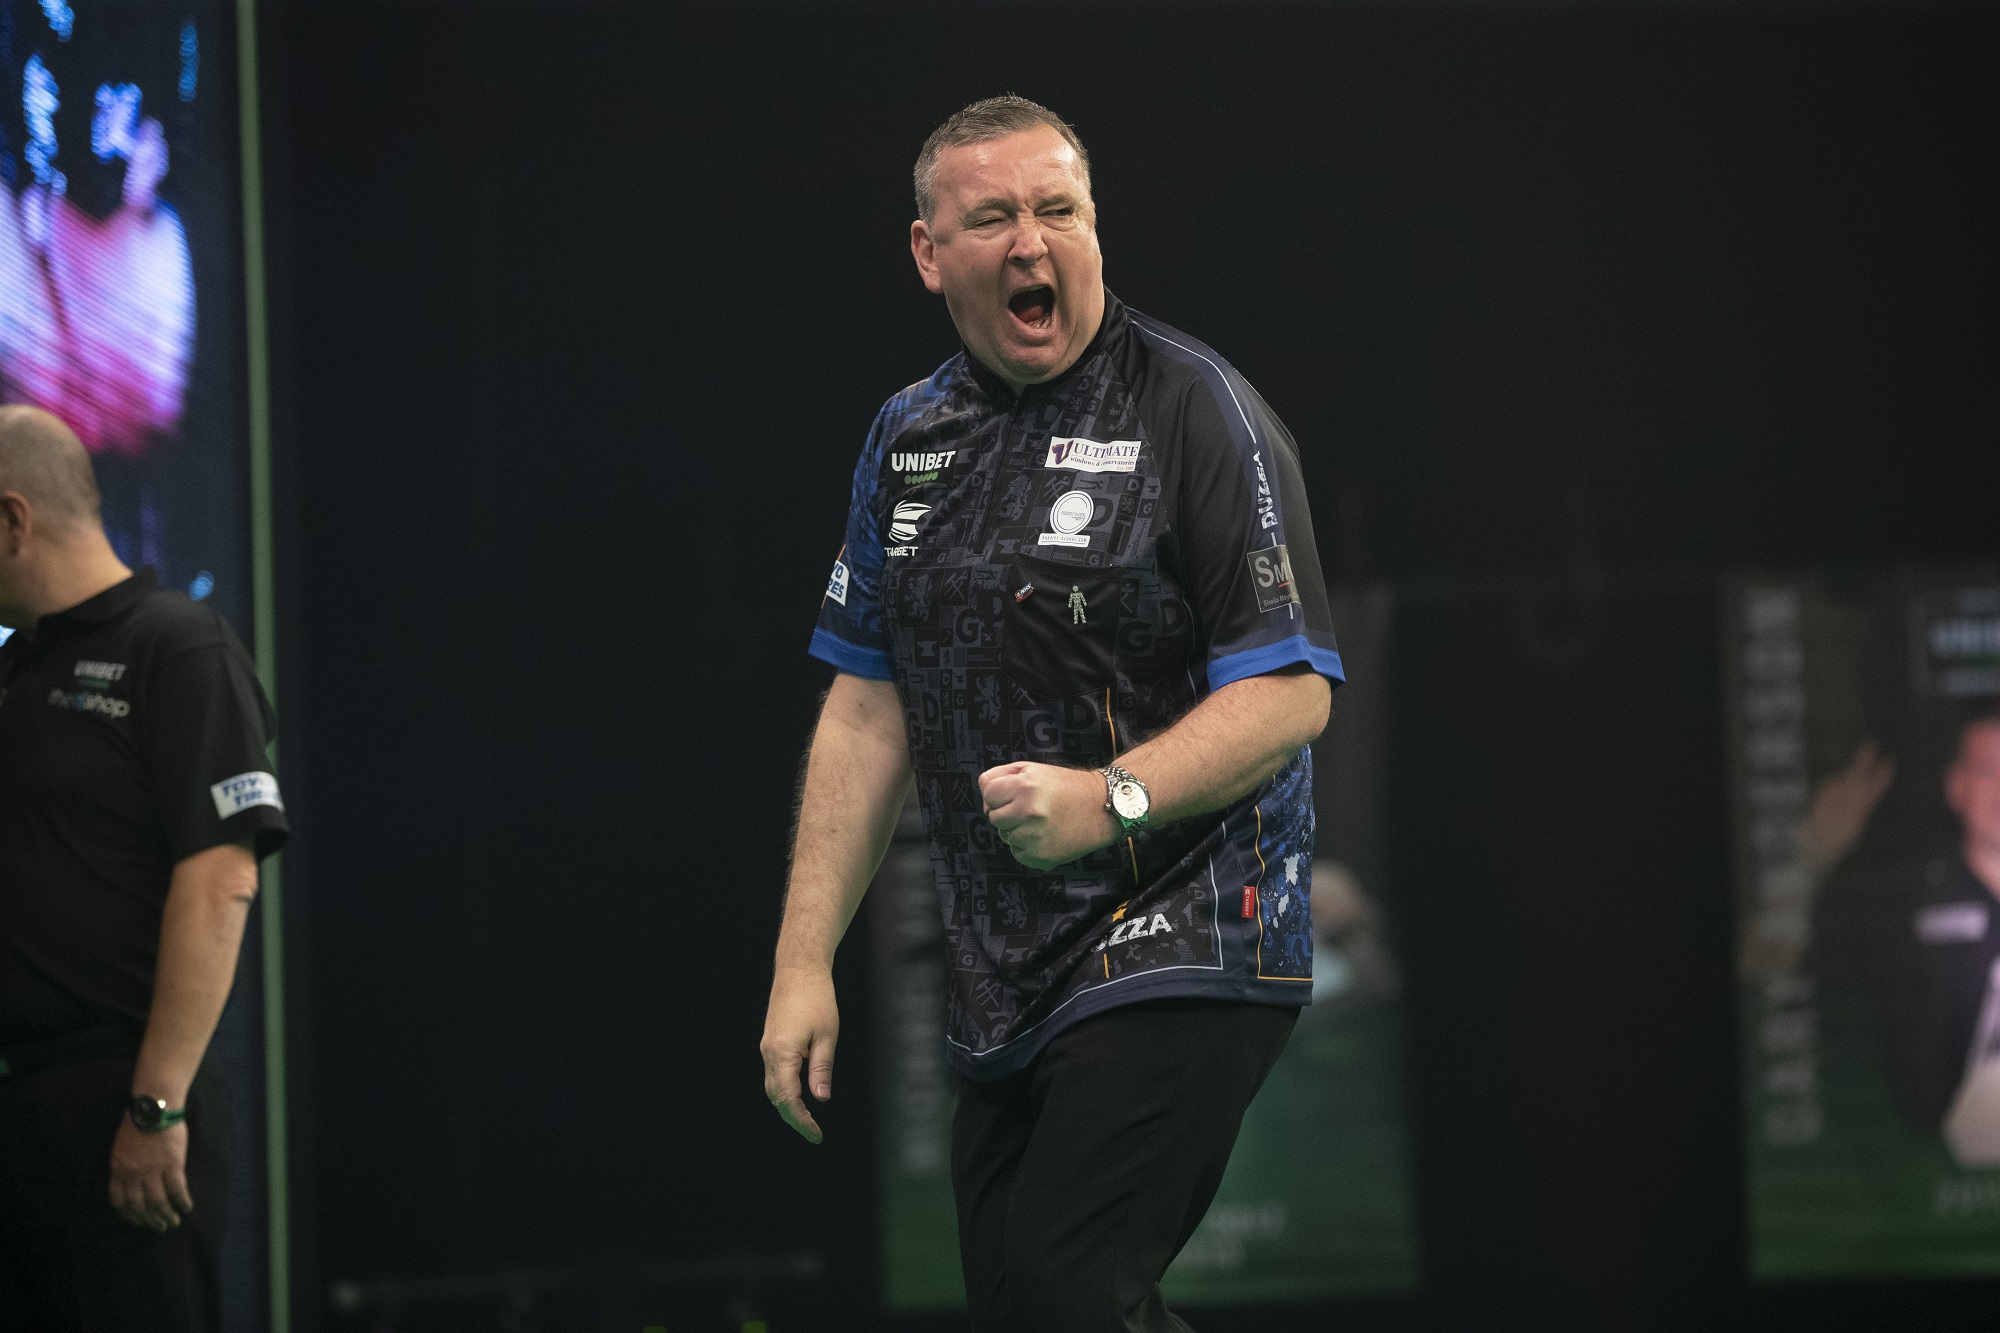 PDC Premier League of Darts night 11 schedule and how to watch